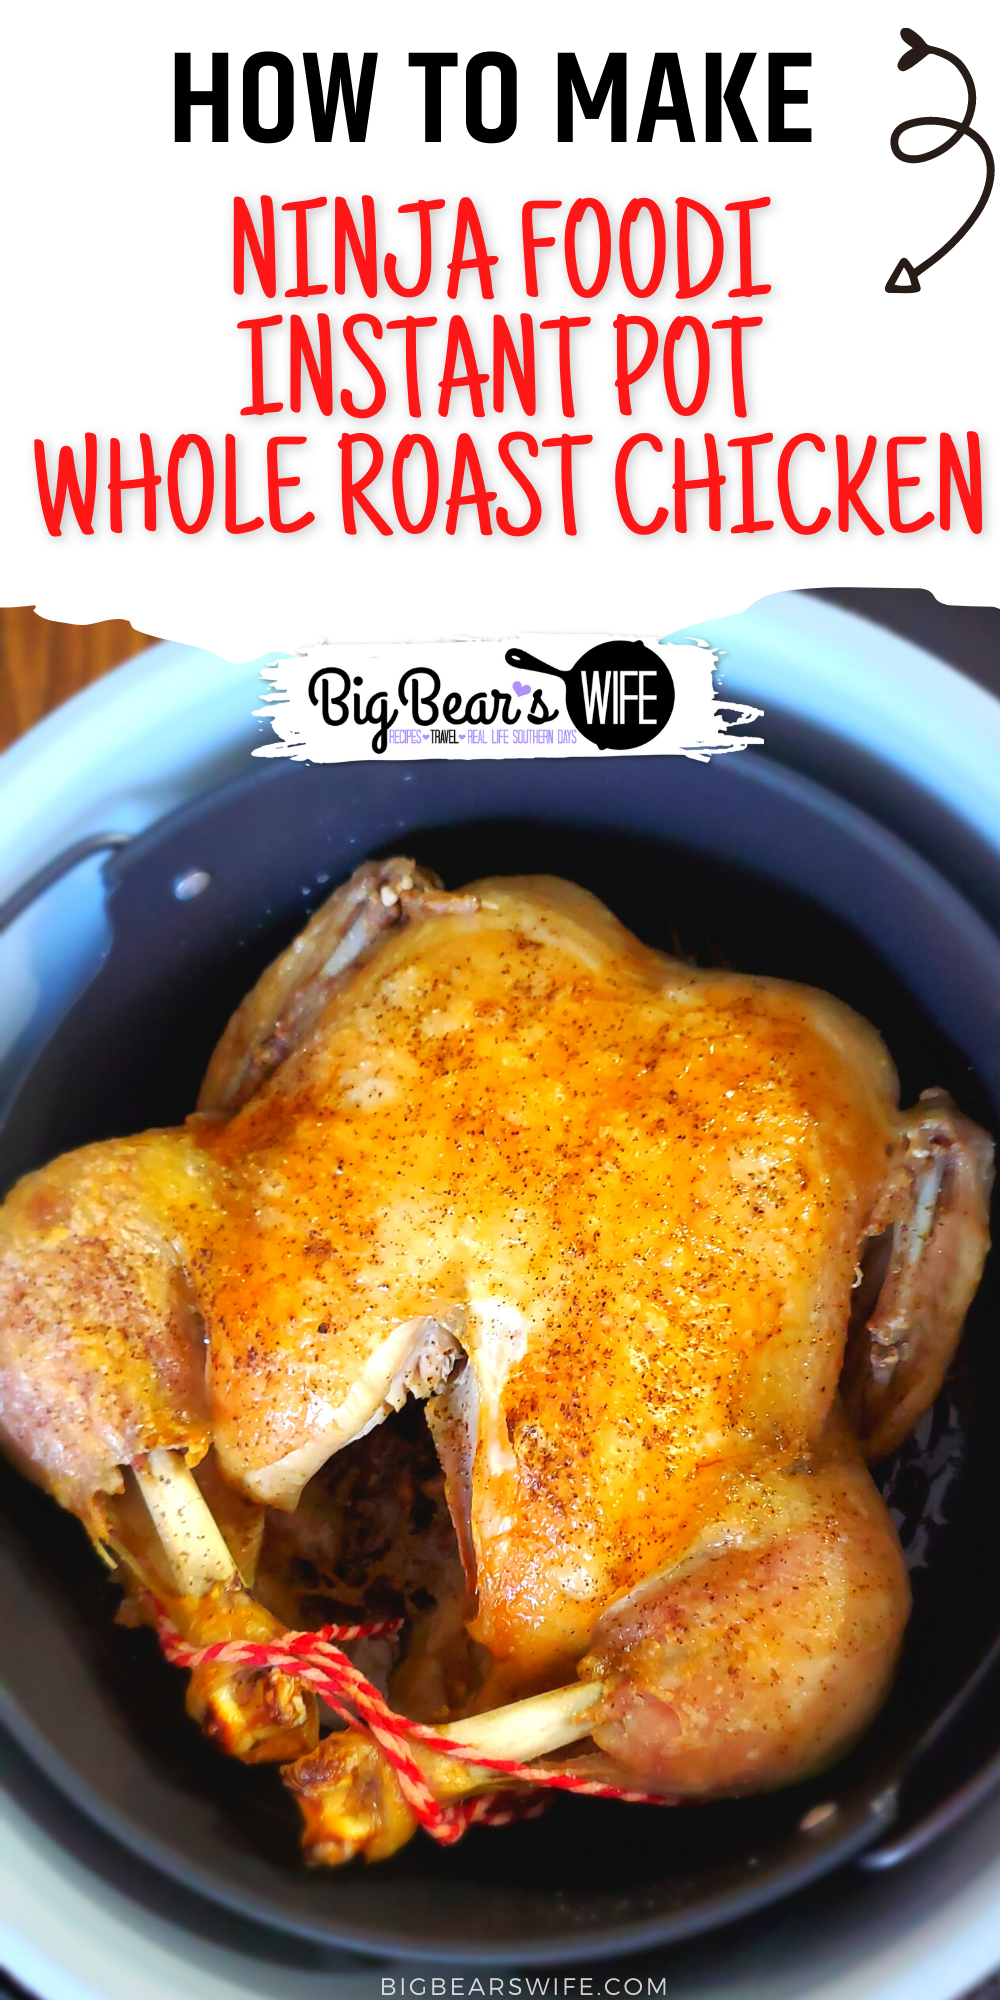 Ninja Foodi Instant Pot Whole Roast Chicken - If you have a Ninja Foodie you'll want this easy recipe for Ninja Foodie Instant Pot Whole Roast Chicken! Use the Instant Pot setting to cook the chicken and the air fryer setting to crisp the skin! via @bigbearswife